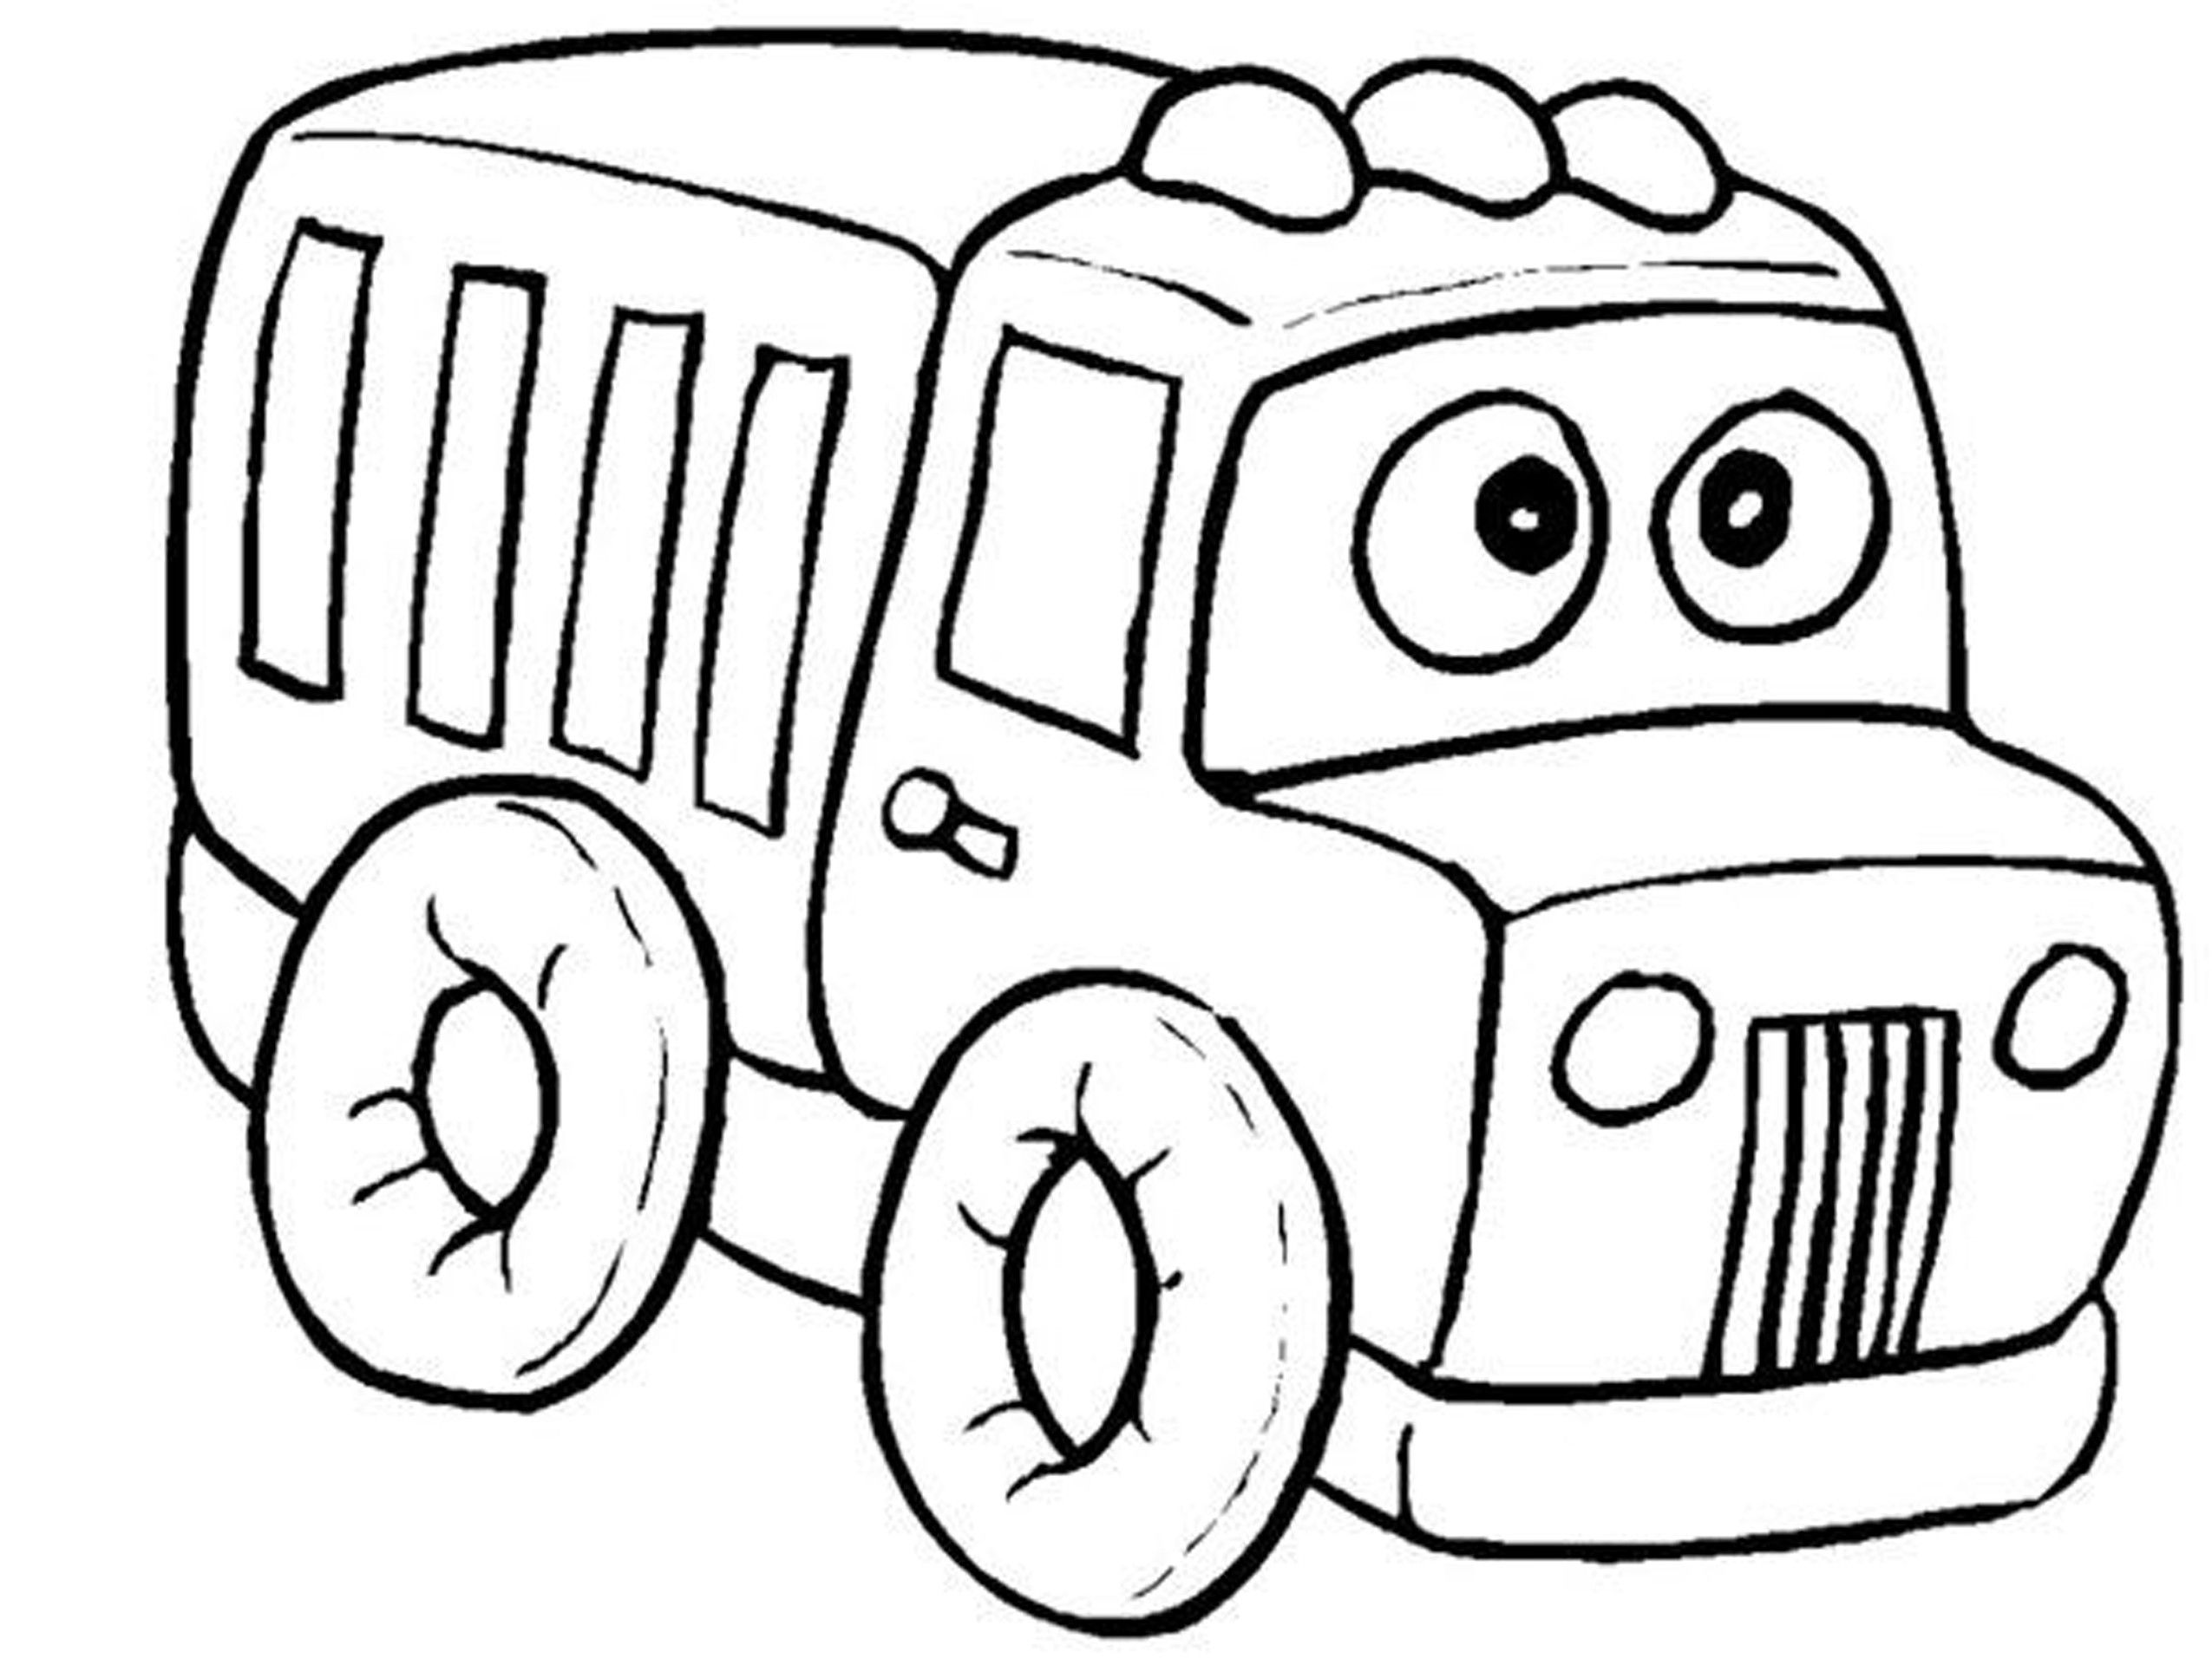 coloring pages for little kids trucks | Colorings | Pinterest | Internet